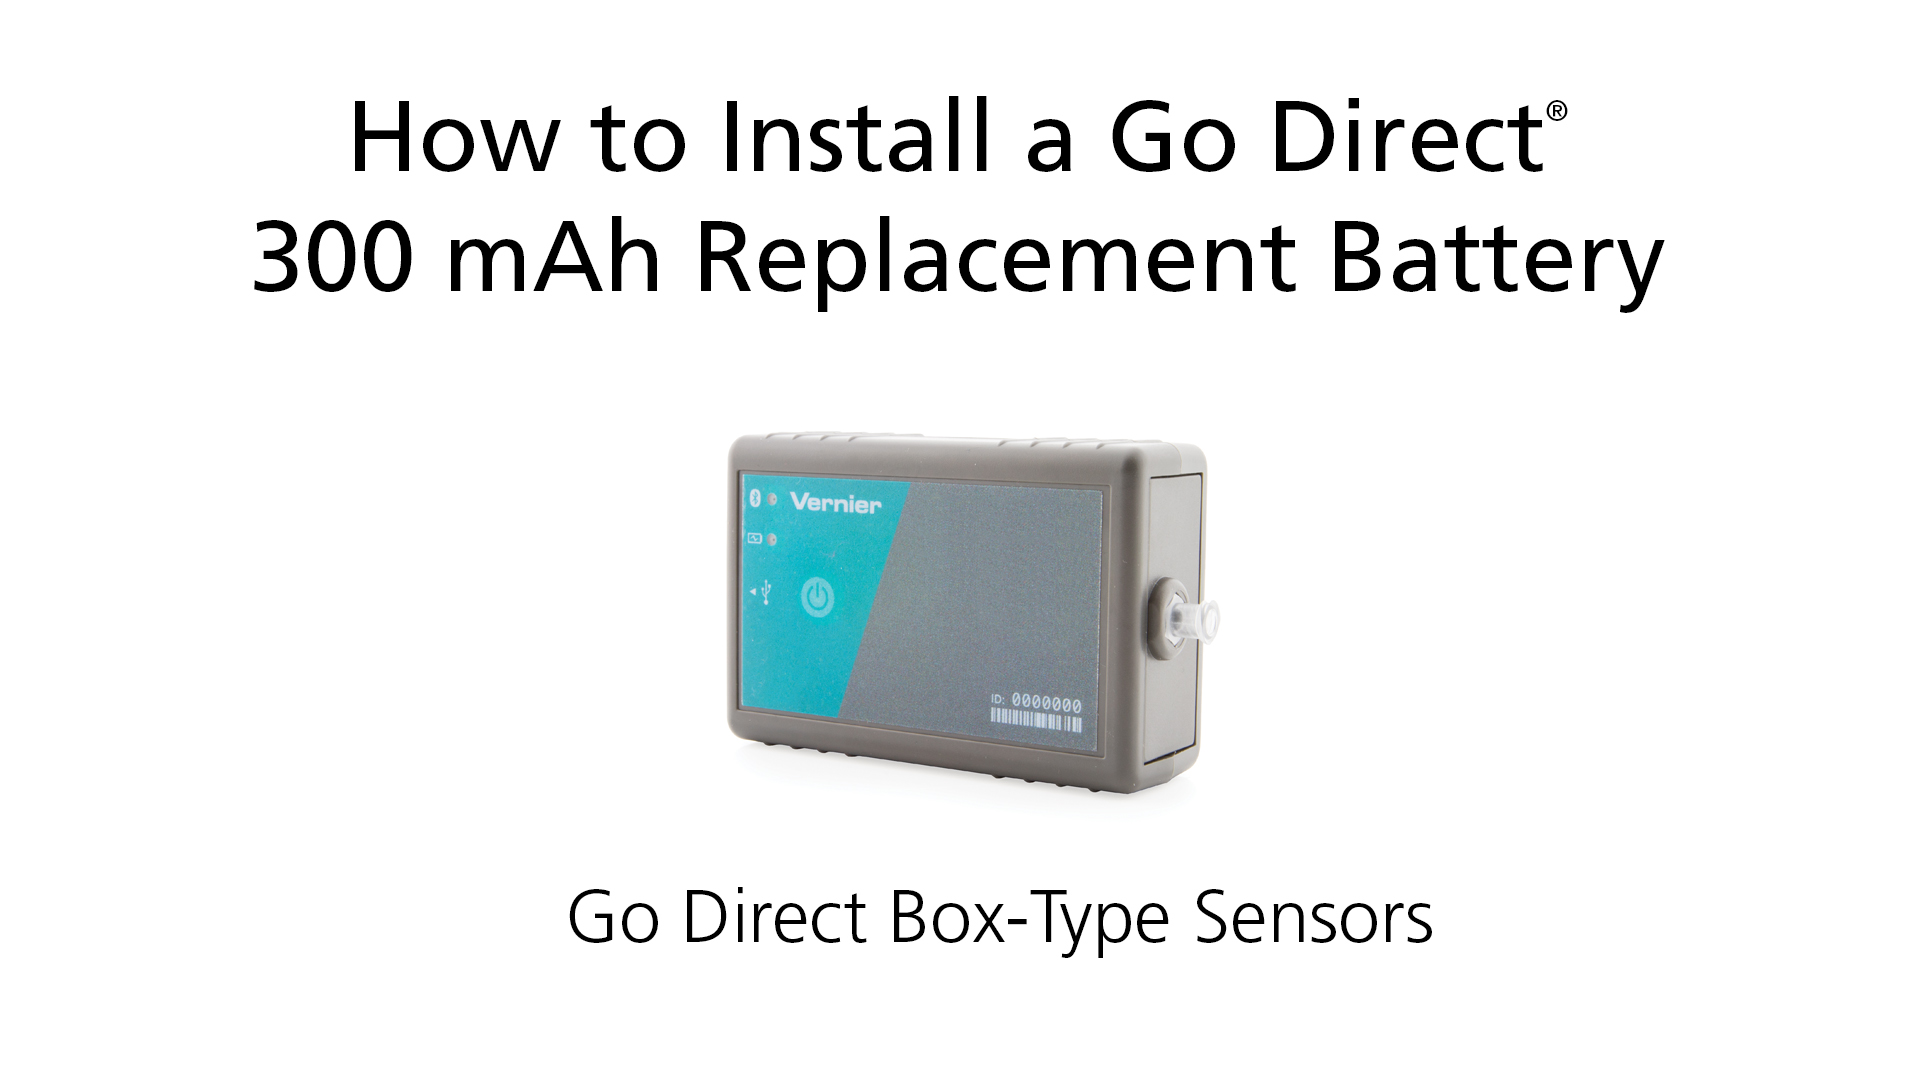 How to Install a Go Direct® 300 mAh Replacement Battery in Box-Type Sensors video